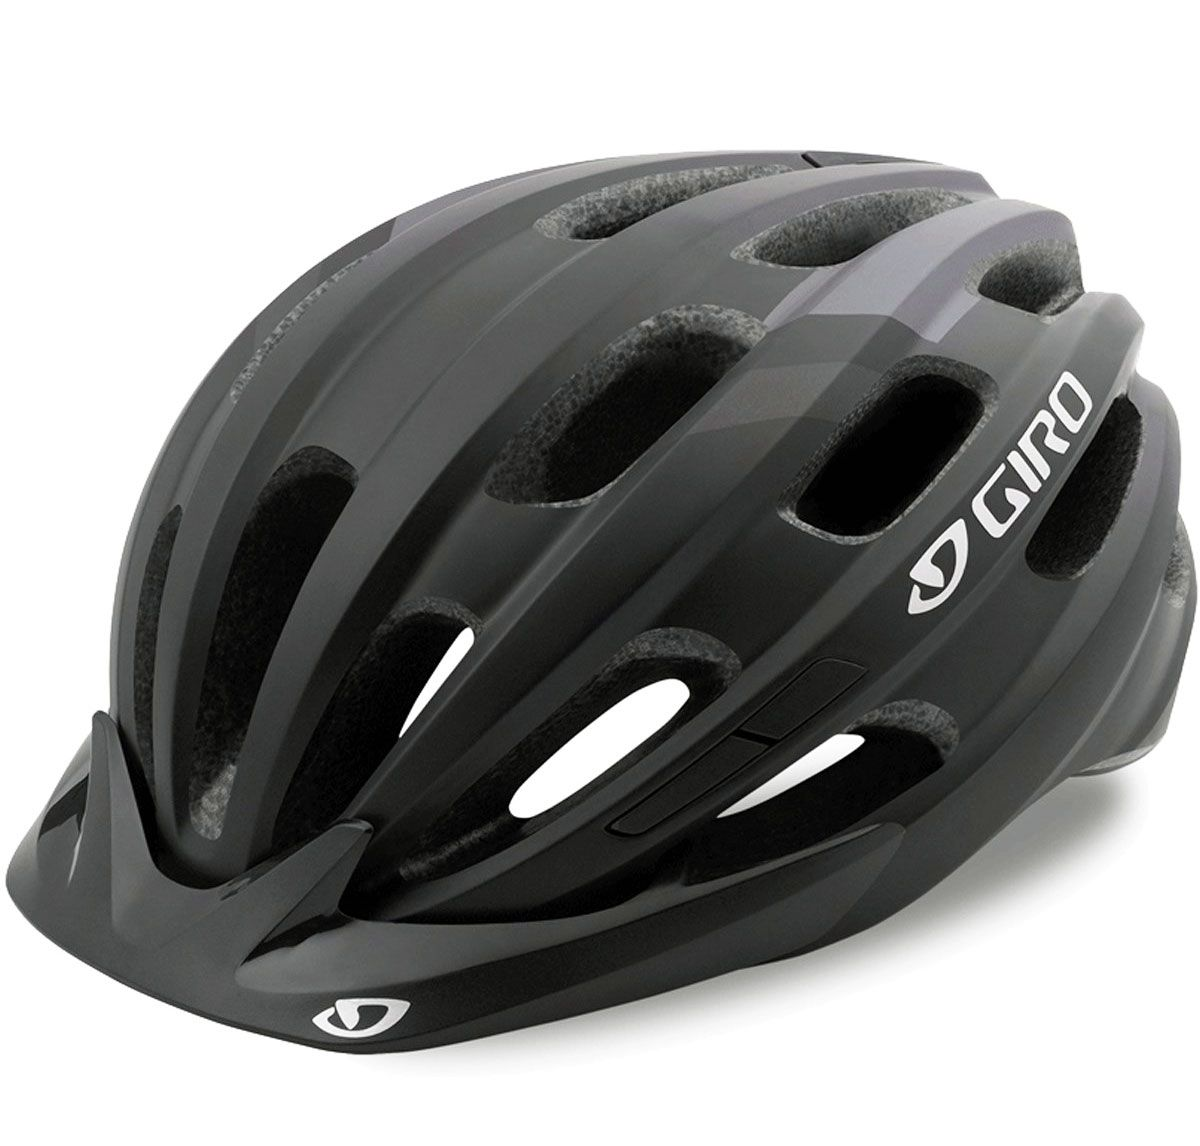 Capacete Register Universal Fit Giro